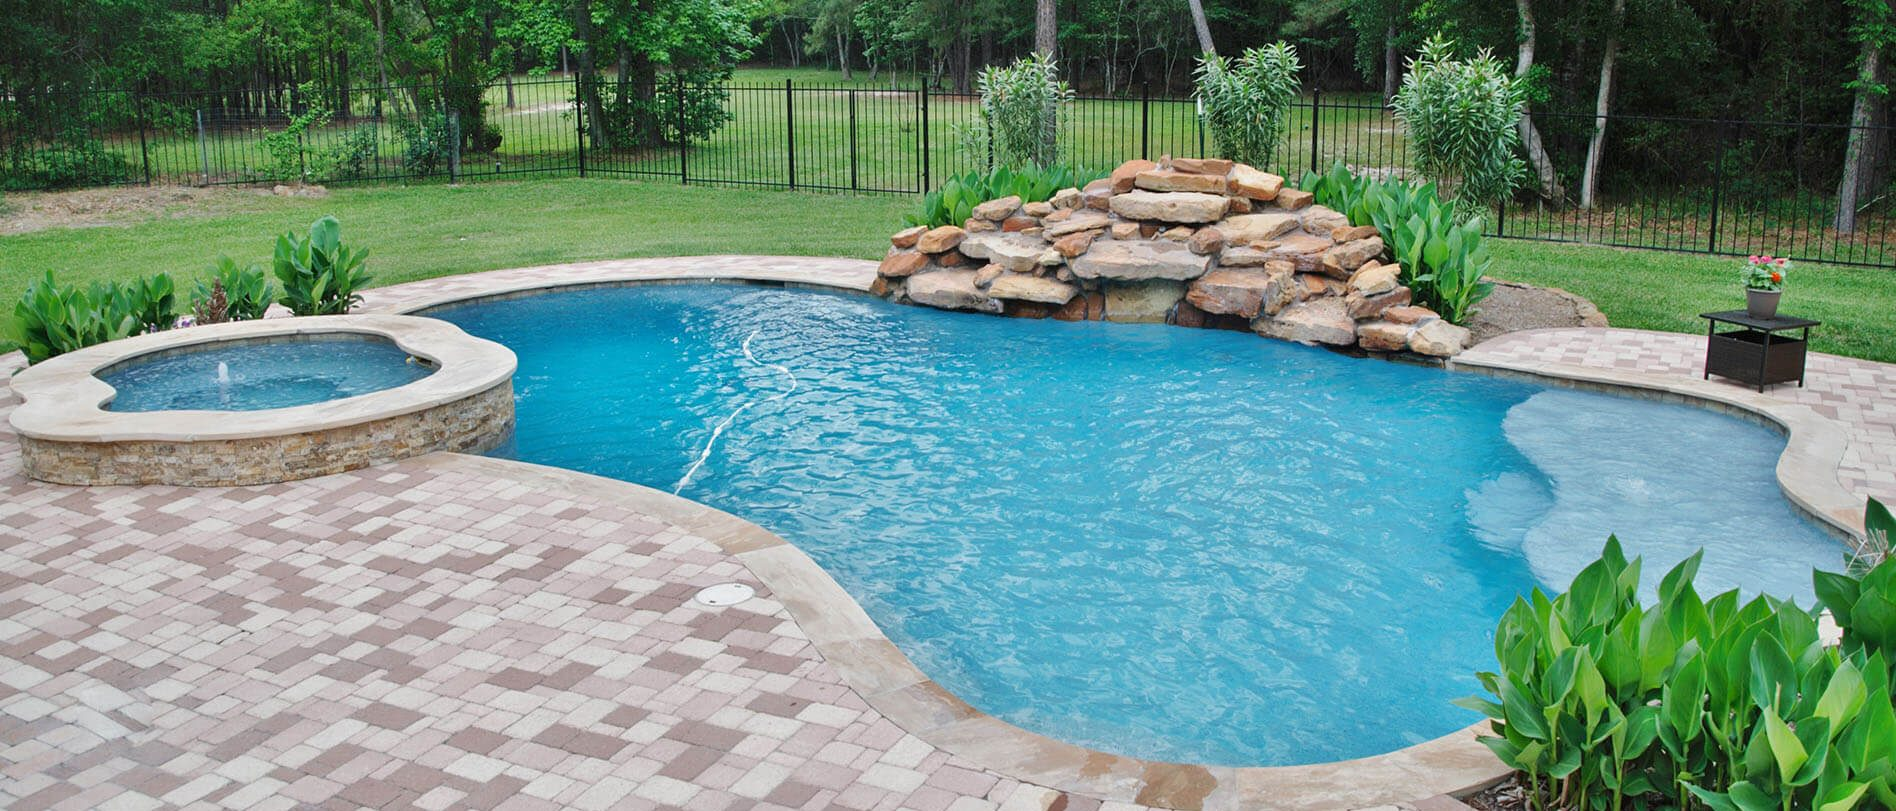 Do I Have To Have A Fence Around My Pool Backyard Oasis